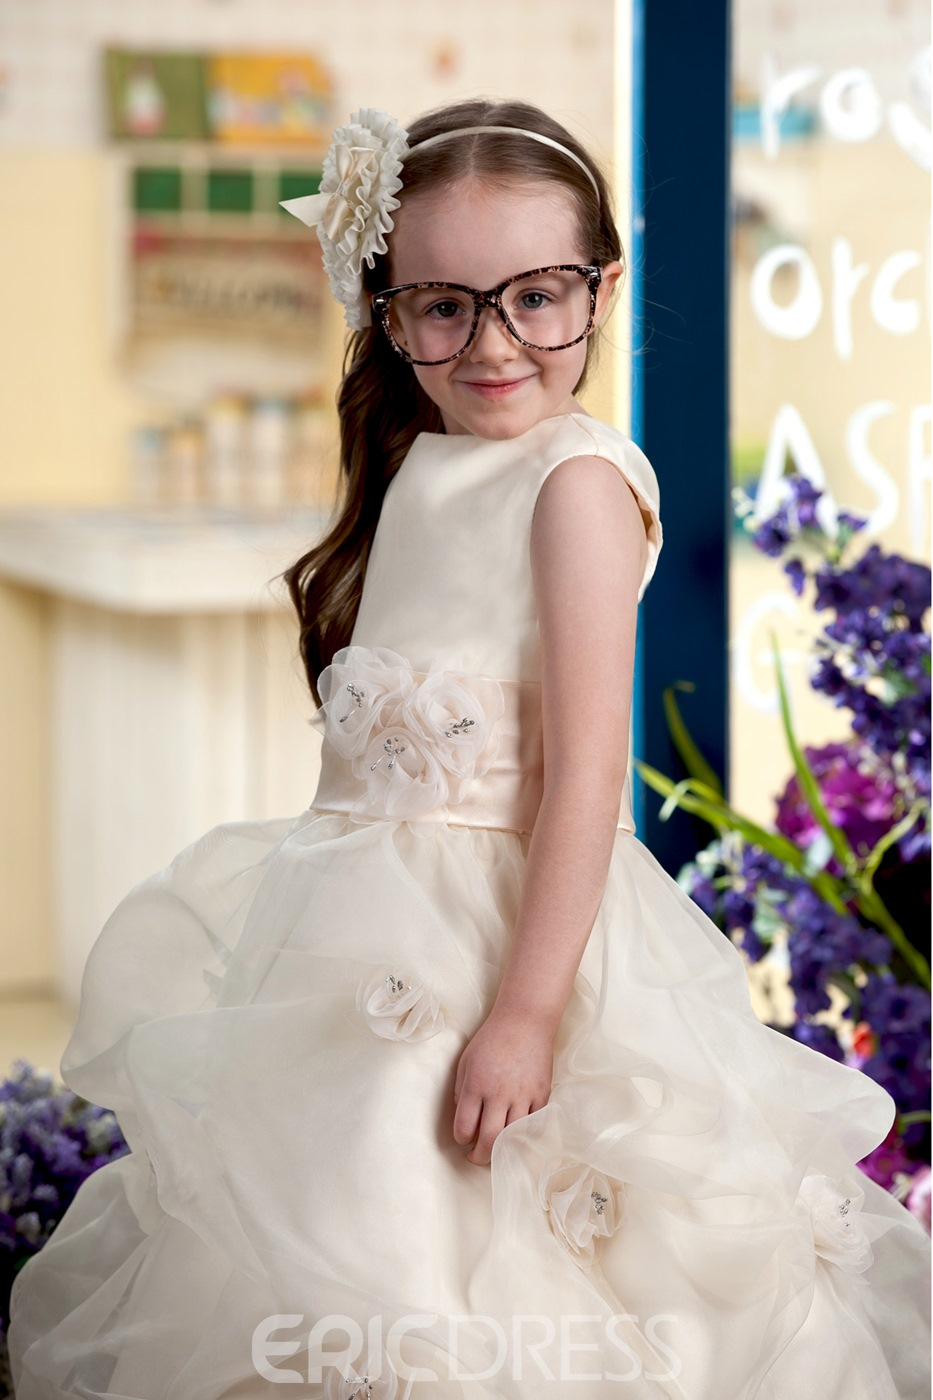 Pretty Ball Gown Bateau Tiered Ankle-length Flowers Embellishing Flower Girl Dress